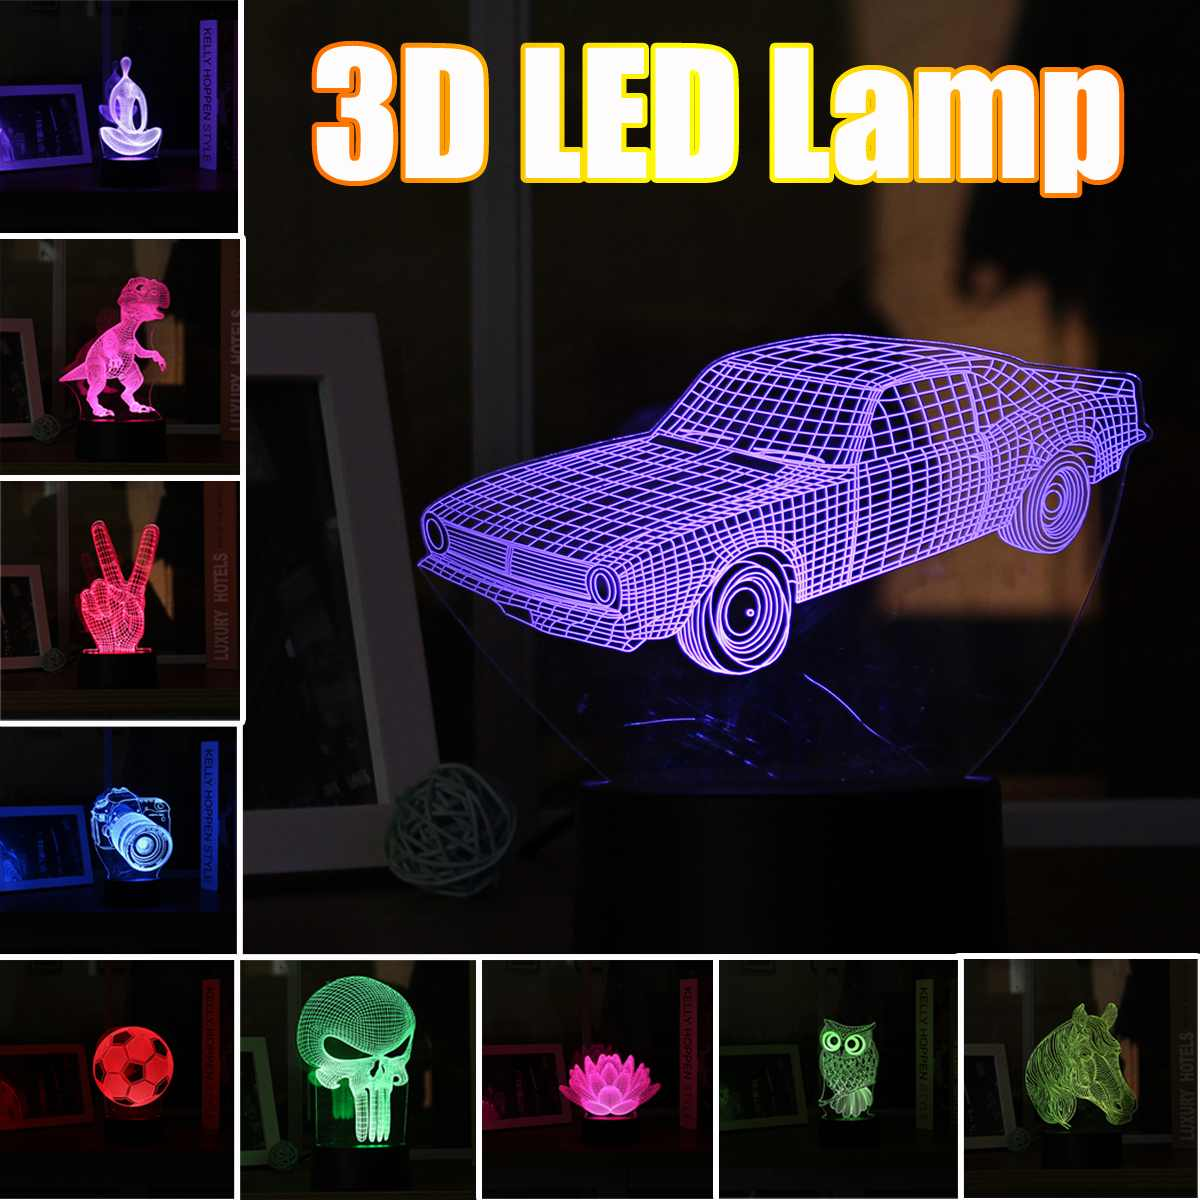 3D LED Lamp RGB Night Light Multicolor Animal Car Acrylic Panel Touchs Switch Lamp Lighting For Children Kids Home Bedroom